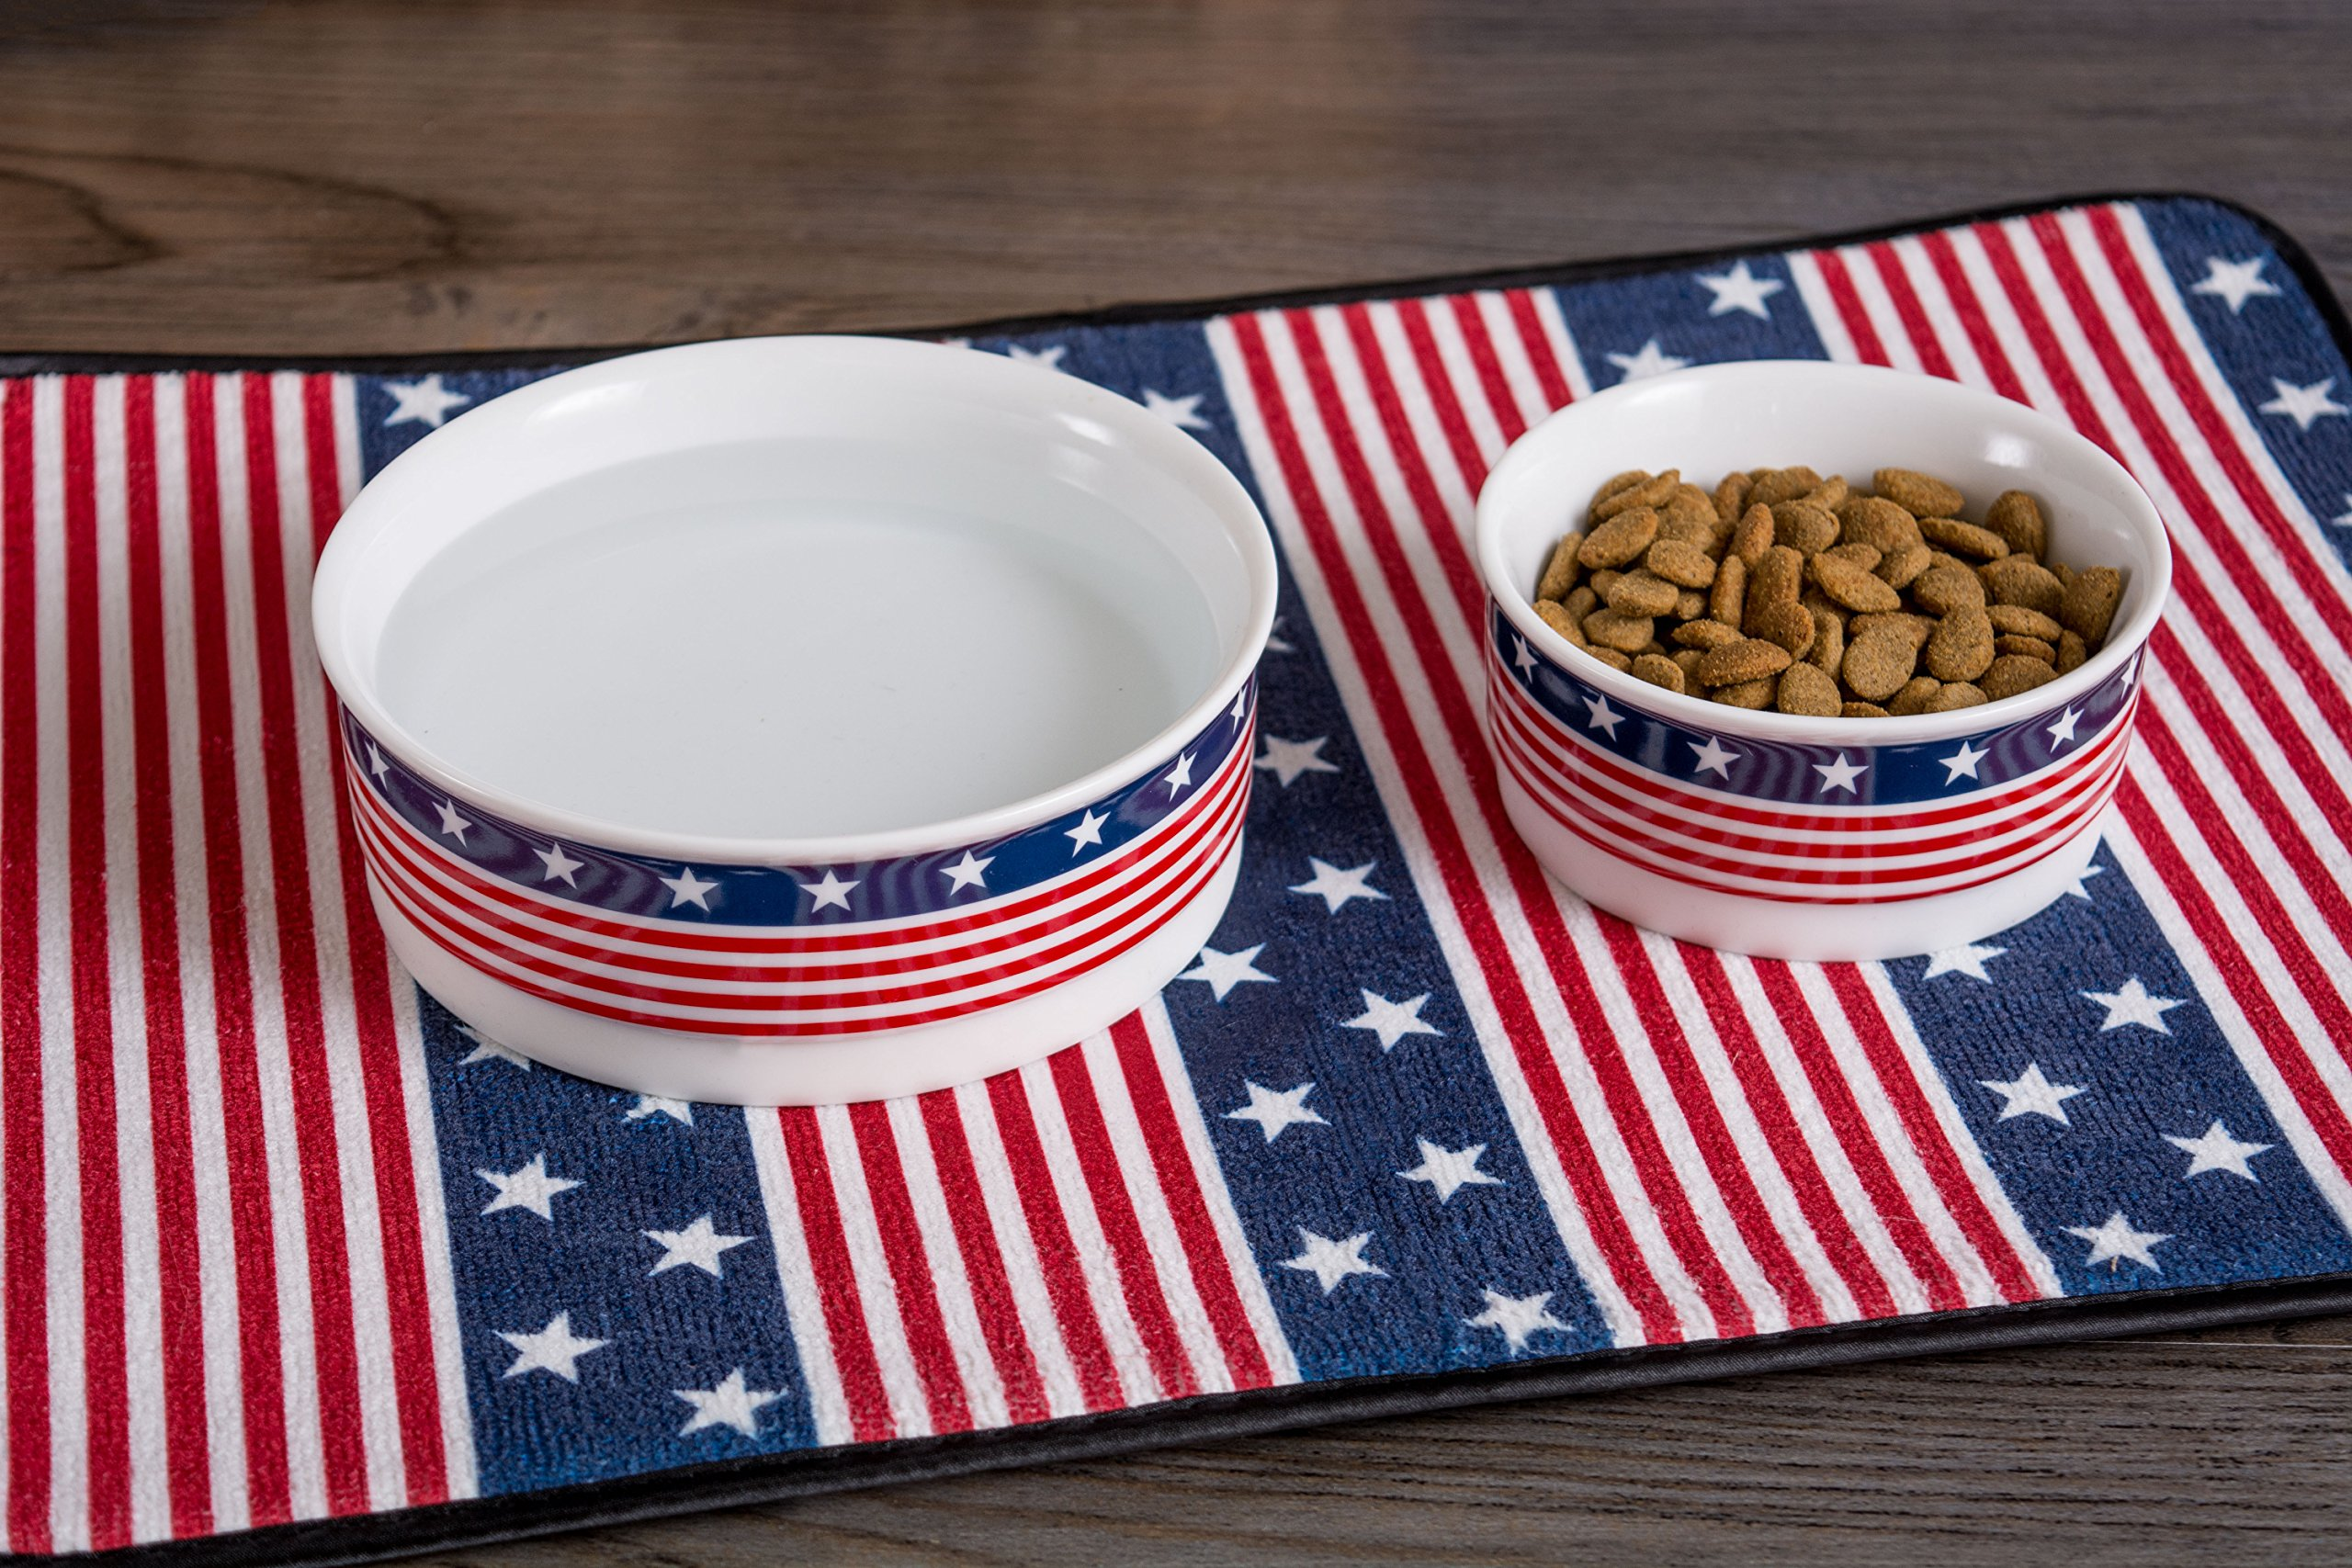 Bone Dry DII Patriotic Ceramic Pet Bowl for Food & Water with Non-Skid Silicone Rim for Dogs and Cats (Large - 7.5'' Dia x 4'' H) Stars and Stripes by Bone Dry (Image #4)